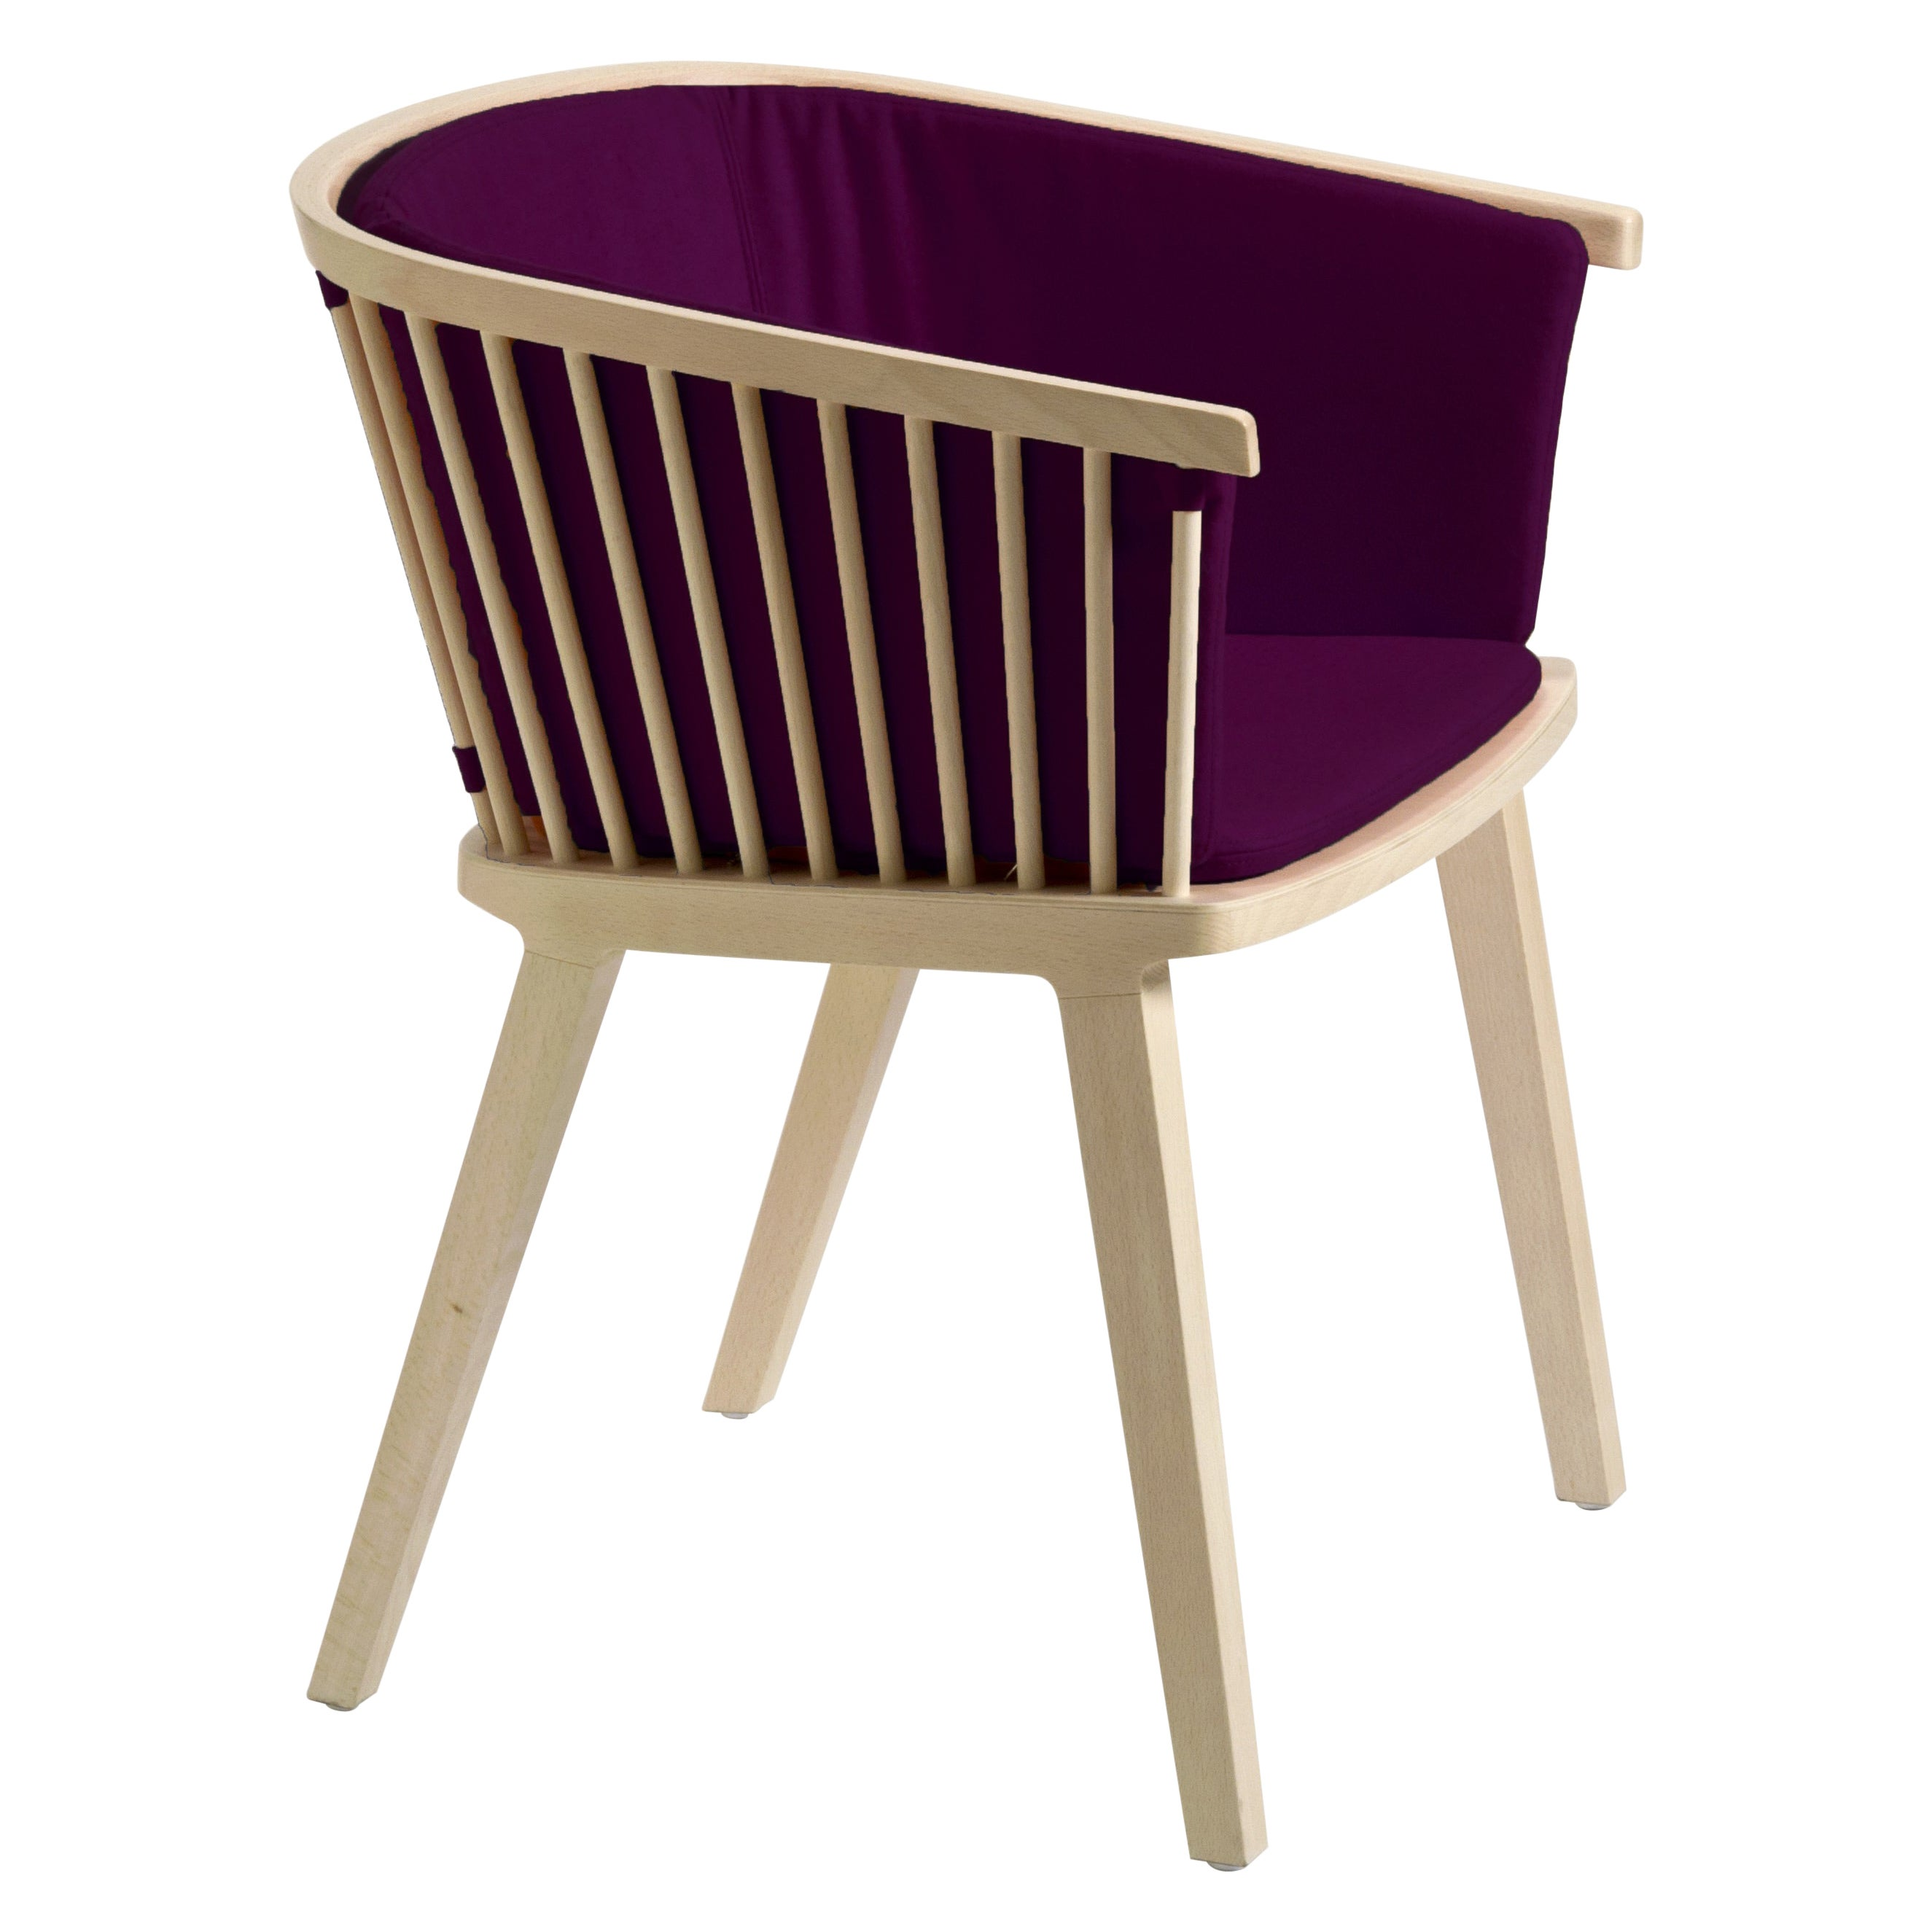 Secreto Armchair in Beechwood, Purple Velvet Cushion, Made in Italy